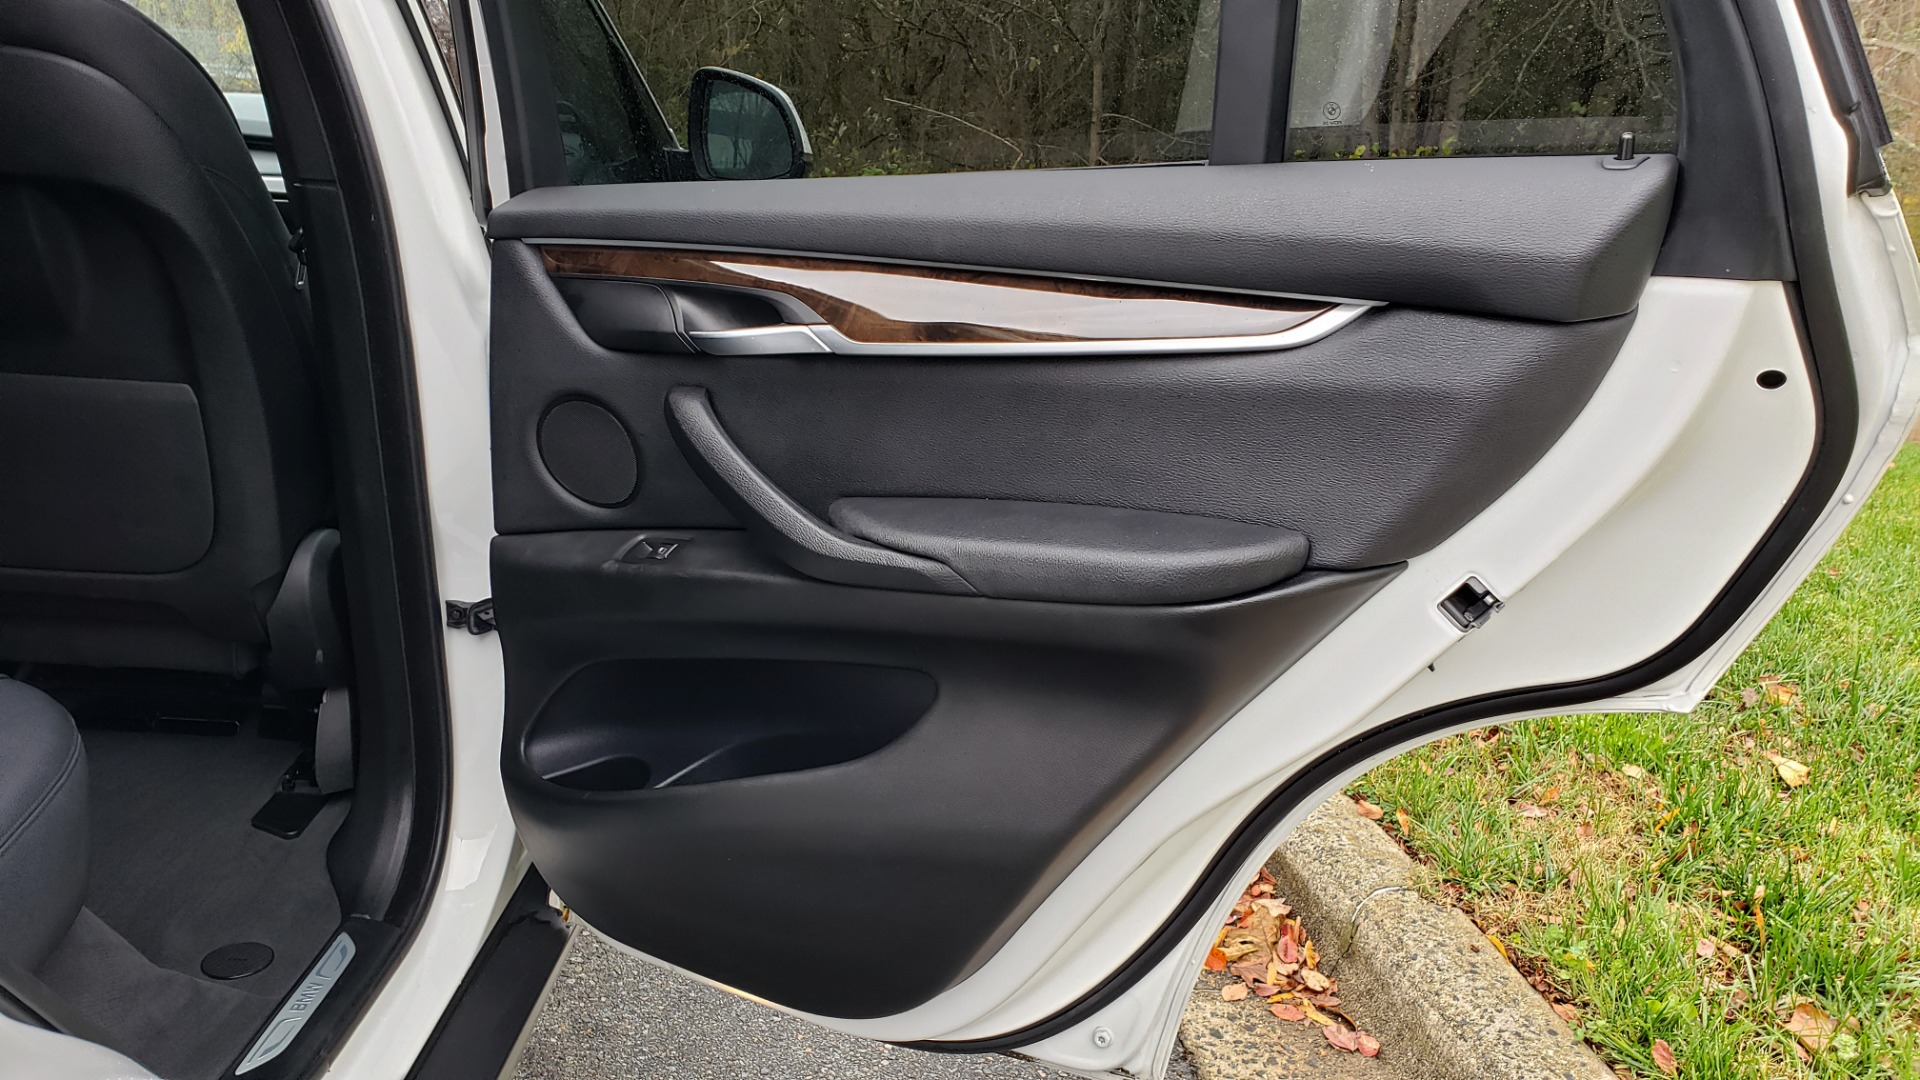 Used 2018 BMW X5 XDRIVE35I / AWD / NAV / HTD STS / SUNROOF / REARVIEW for sale Sold at Formula Imports in Charlotte NC 28227 69